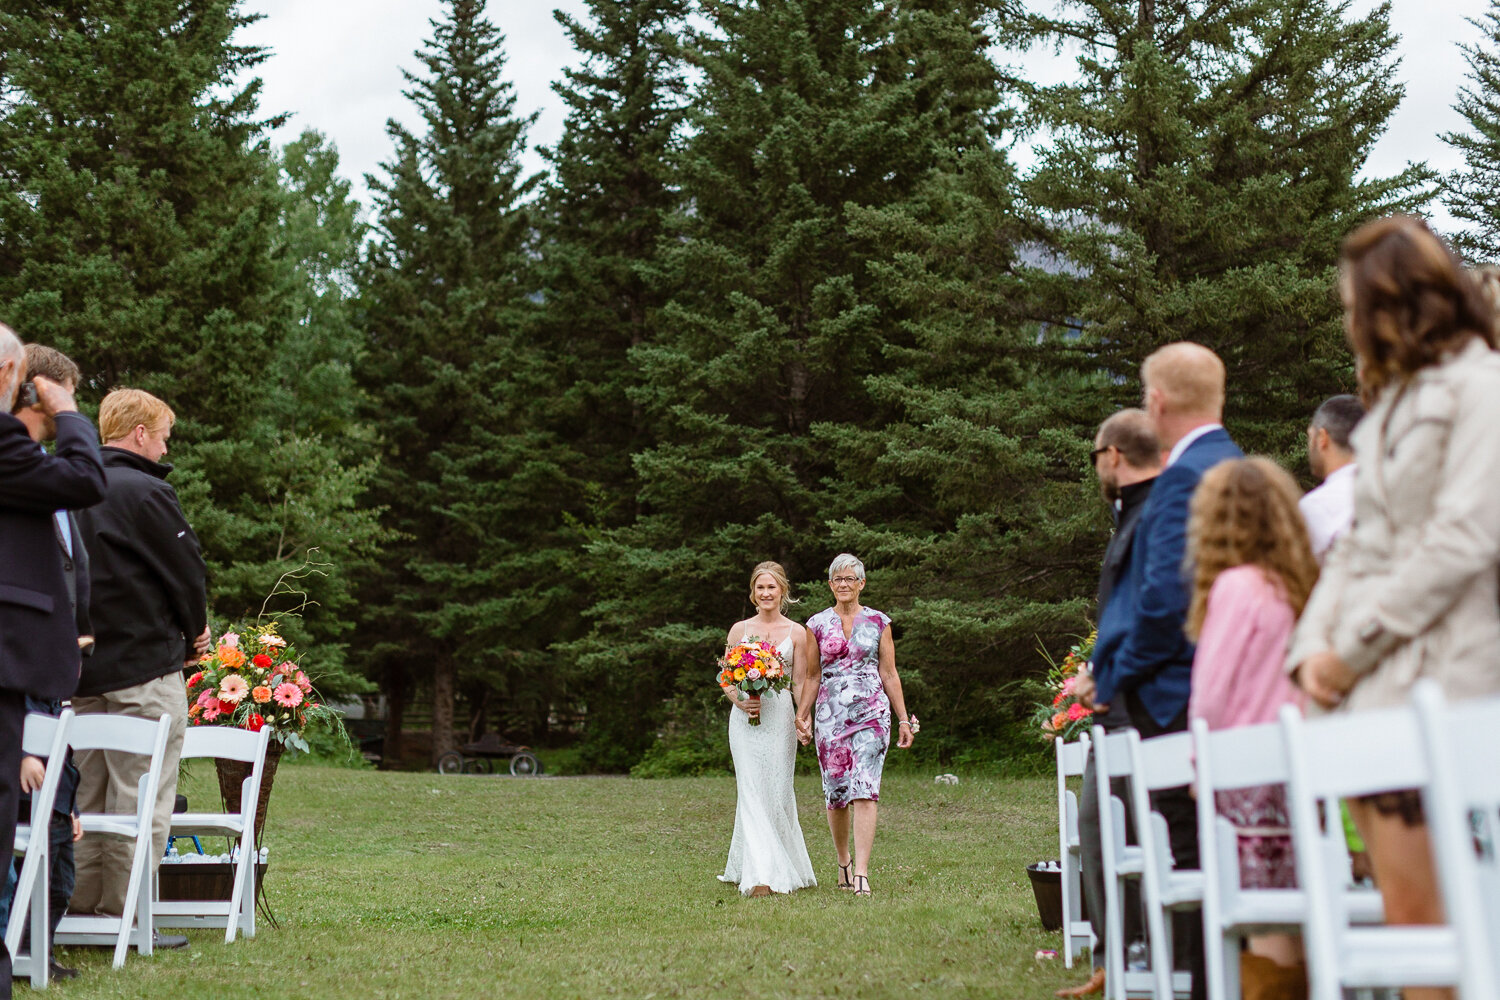 55-Canmore-Alberta-Real-Wedding-Best-Wedding-Photographers-74.JPG